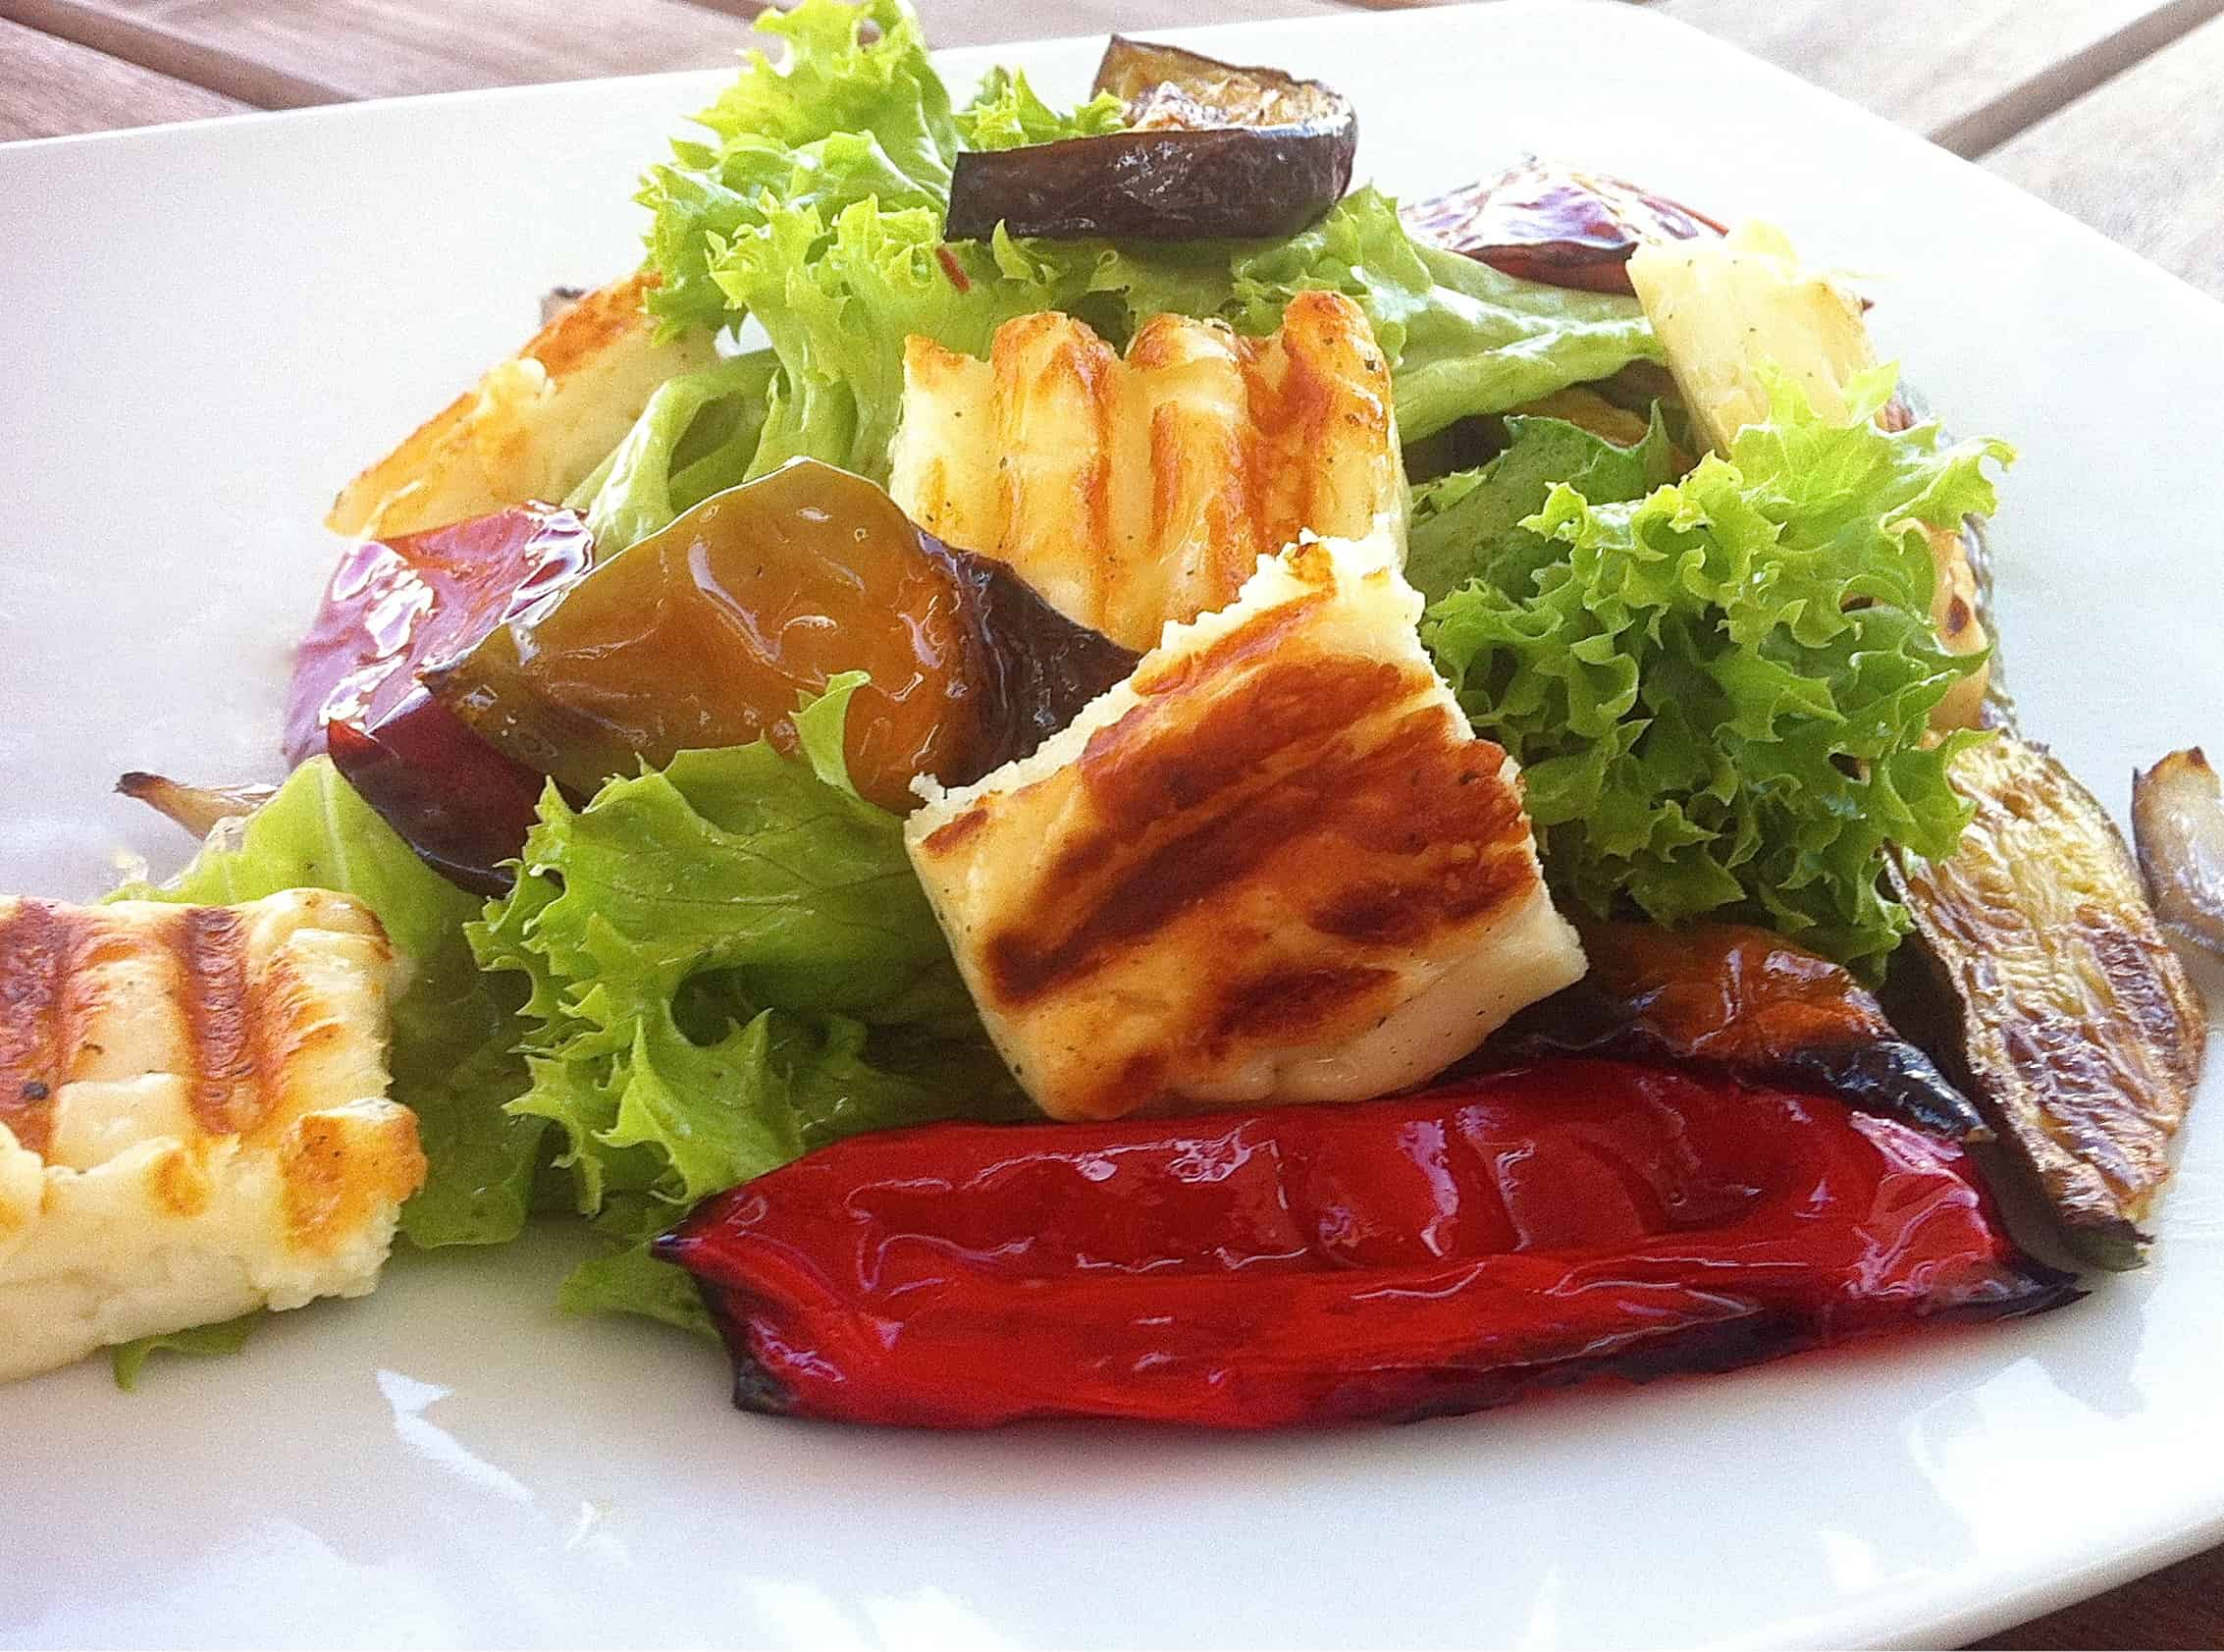 grilled halloumi and roasted vegetables salad recipe my